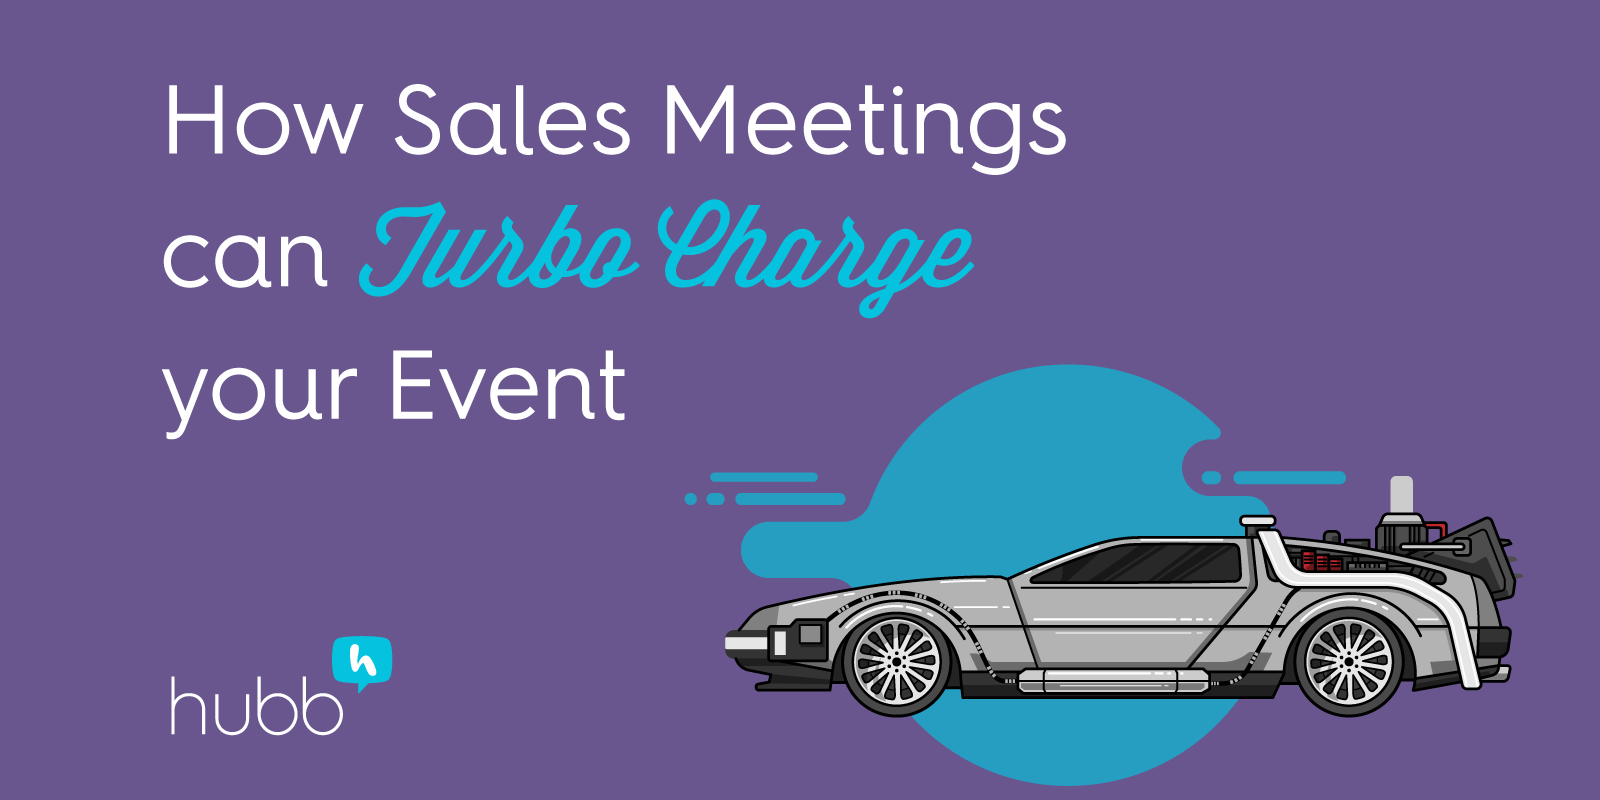 How Sales Meetings Can Turbo Charge your Event